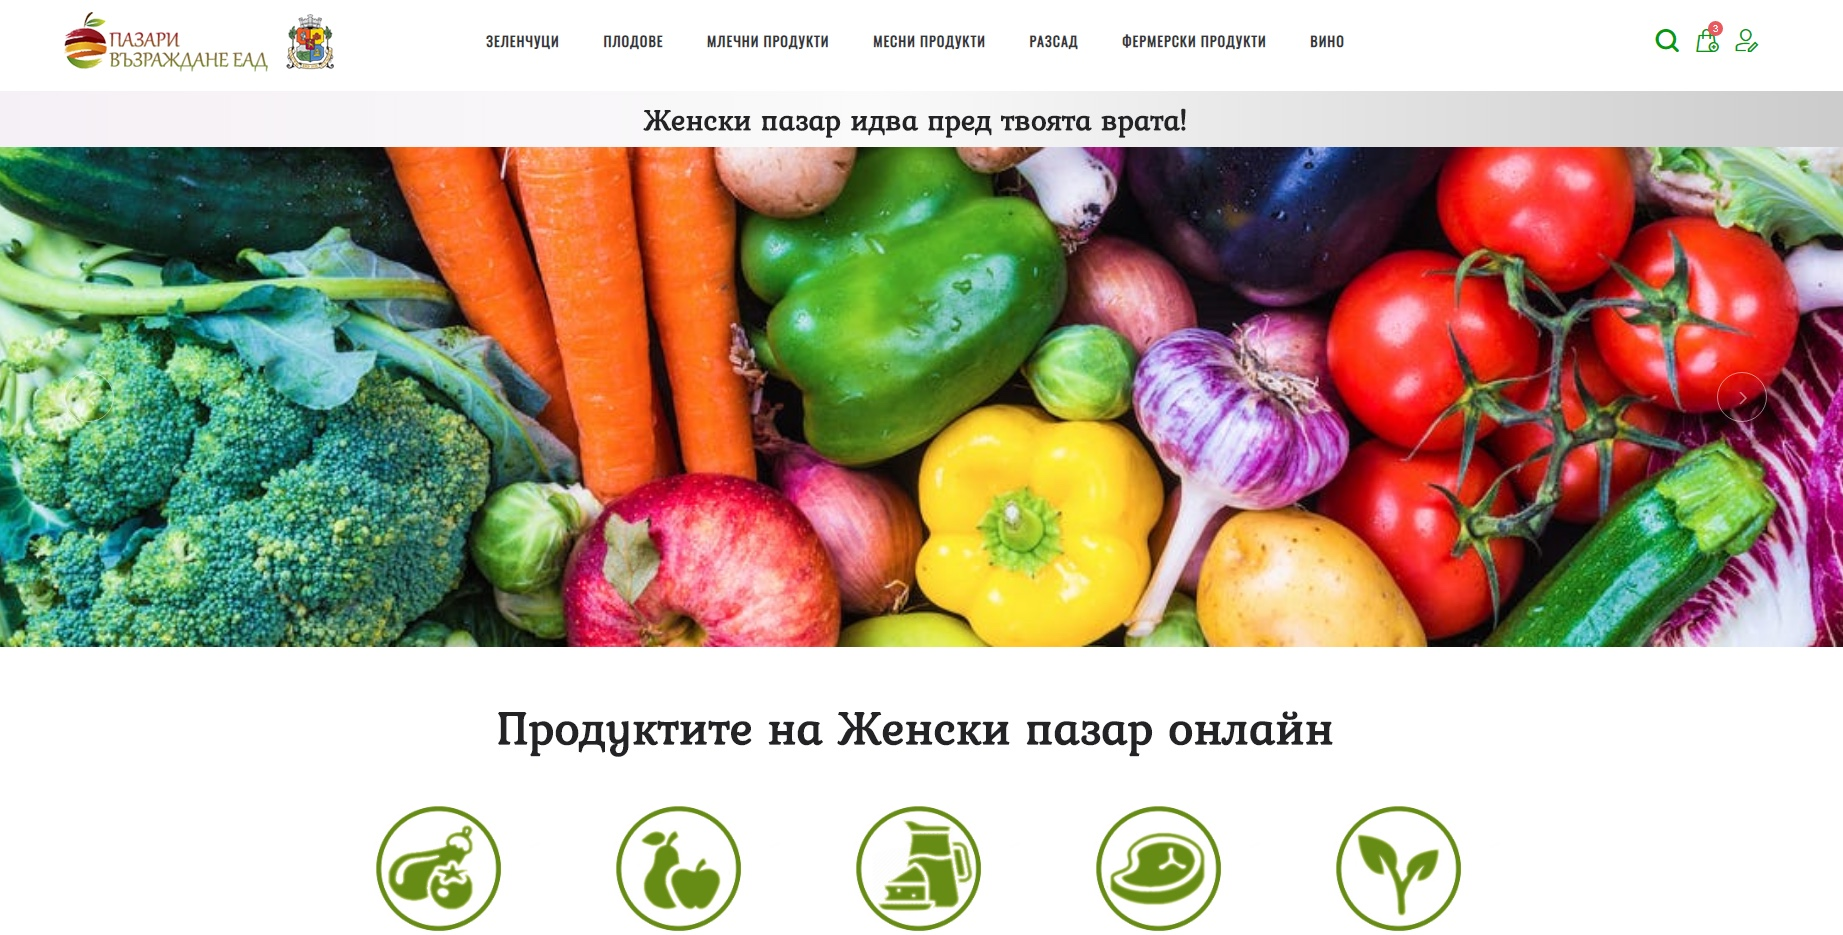 You can already order online from the Zhenski Pazar Market at www.e-pazar.bg